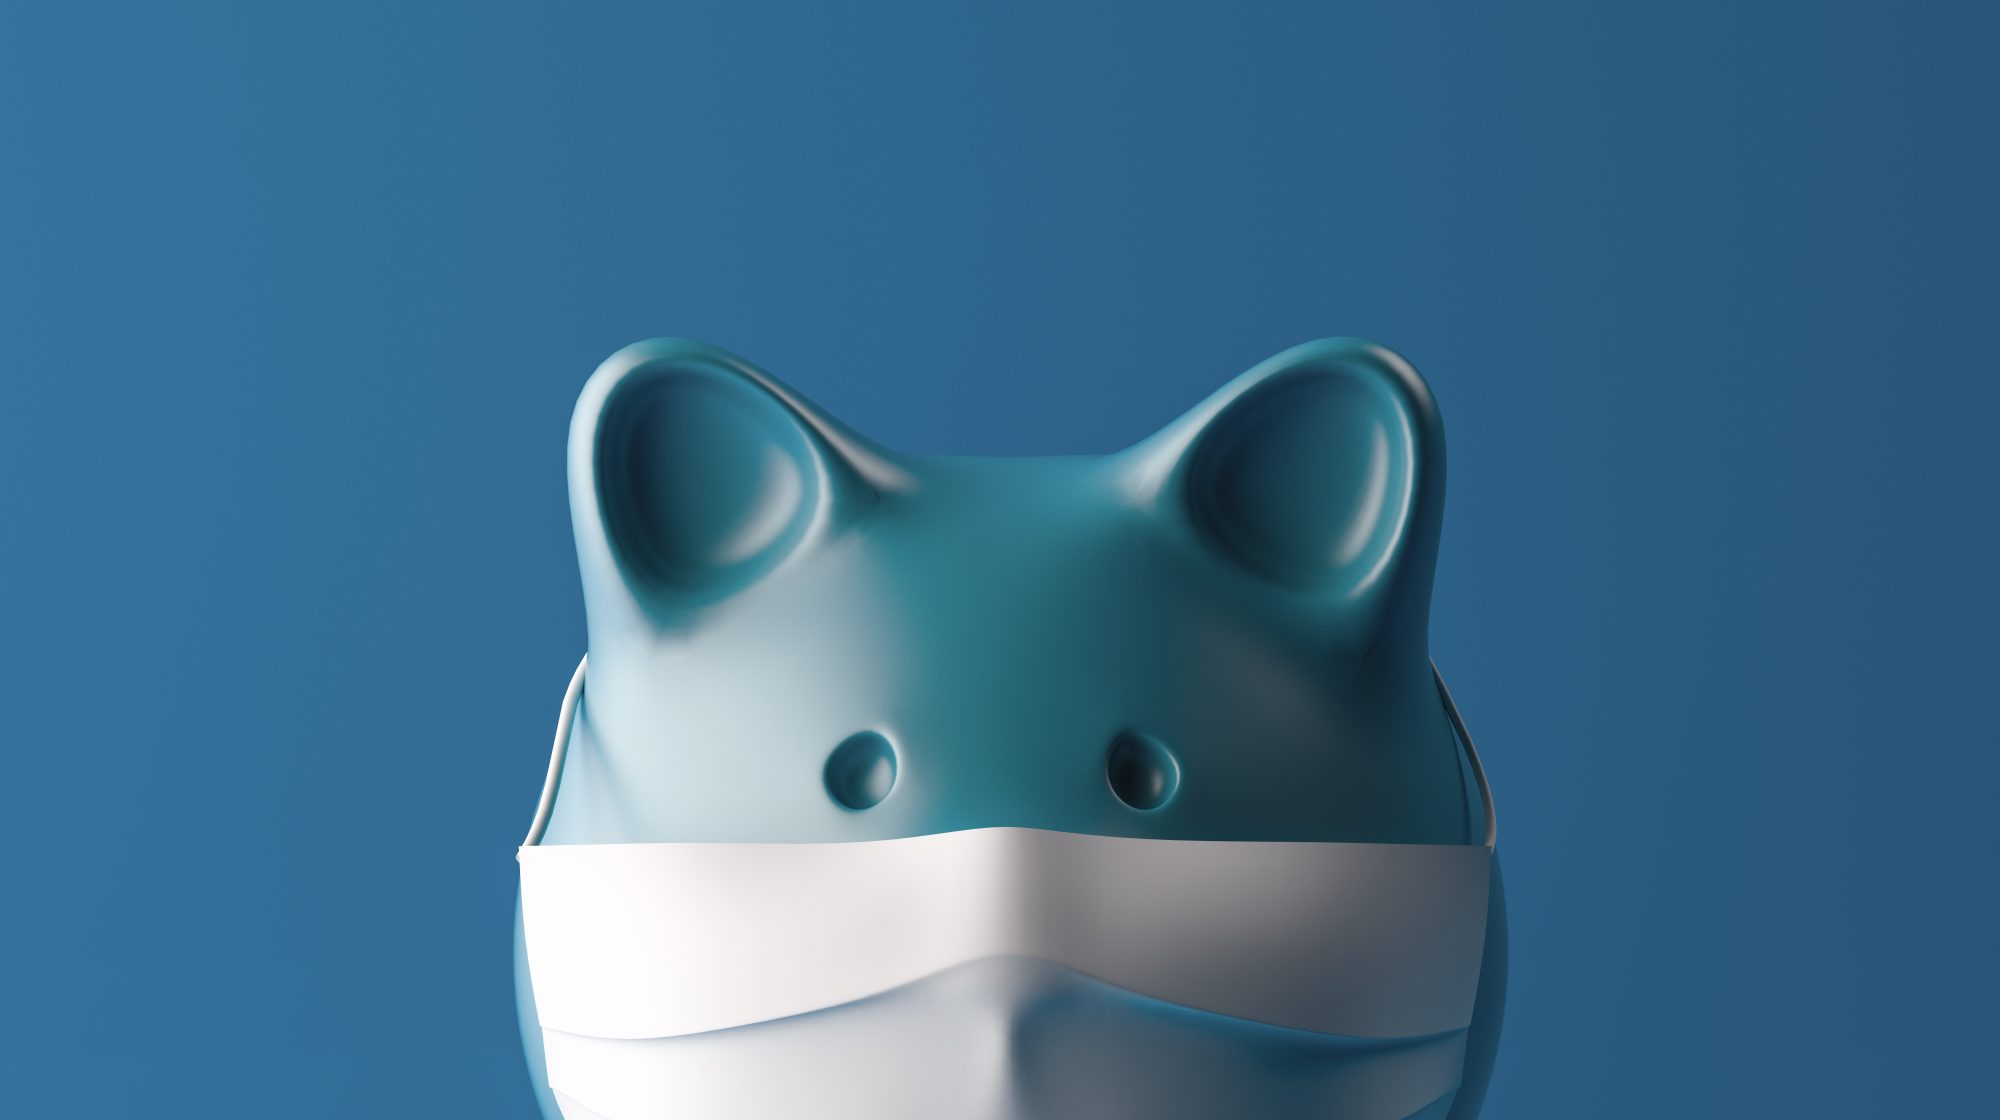 How to Use Stimulus Checks: Piggy bank with surgical mask